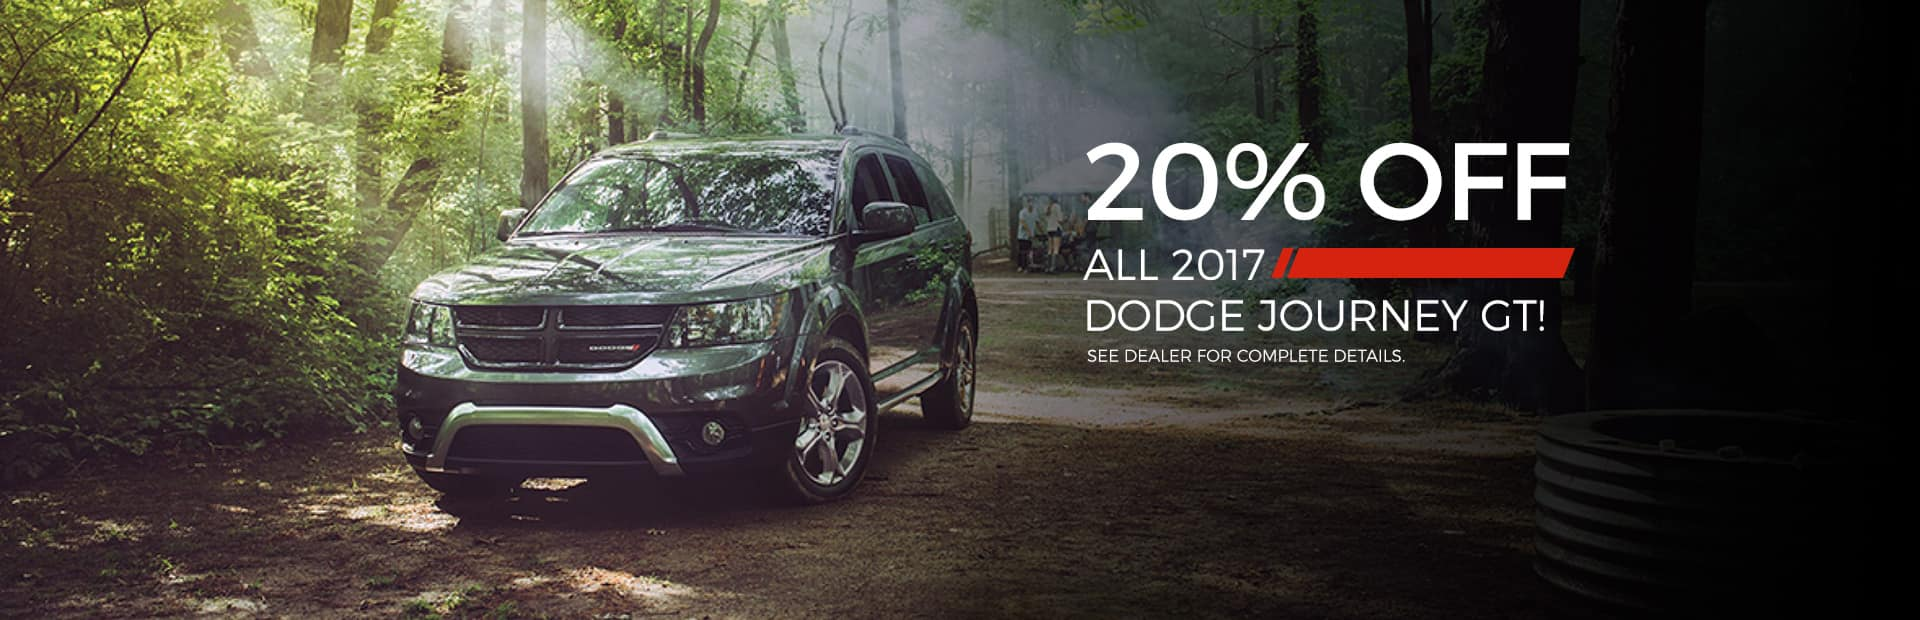 20% off 17 dodge journey